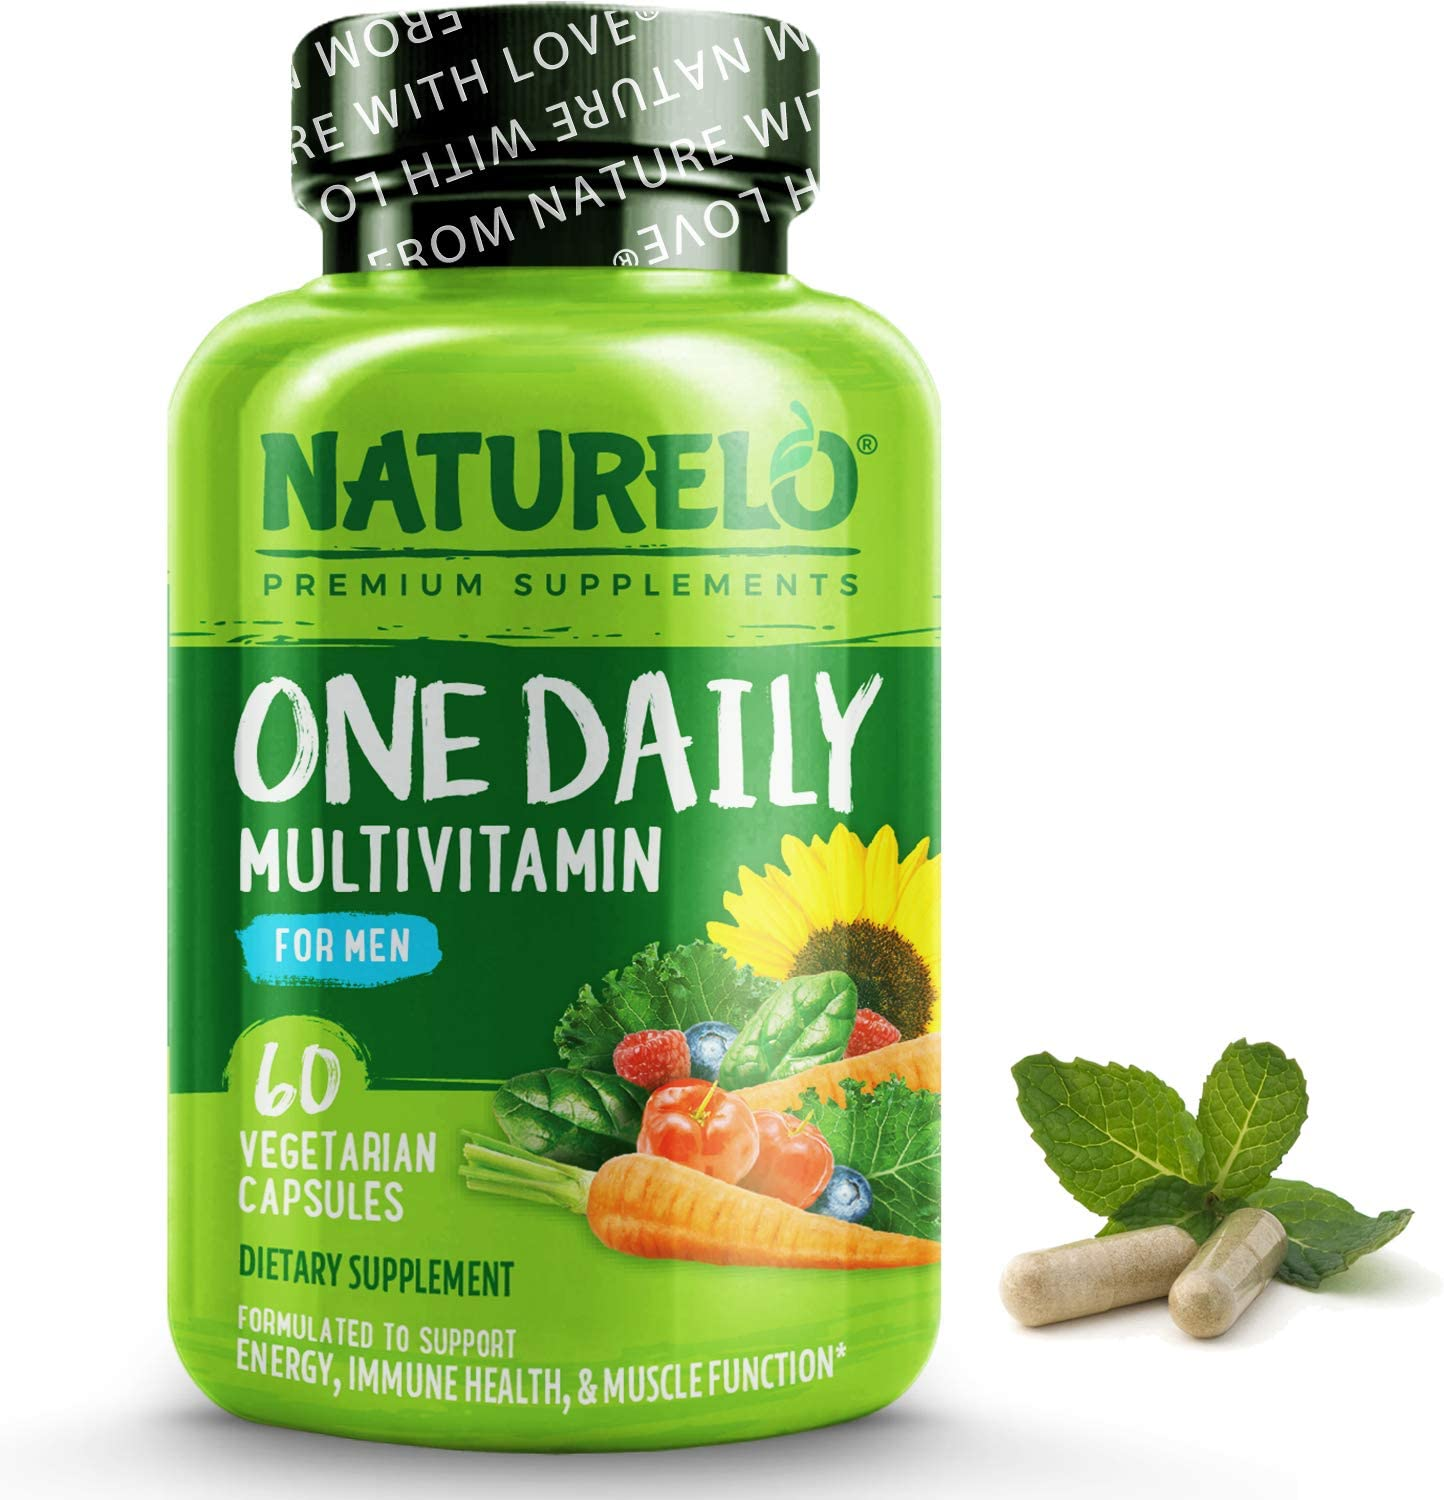 NATURELO One Daily Multivitamin for with Men Vitamins - Minera Max Finally popular brand 46% OFF